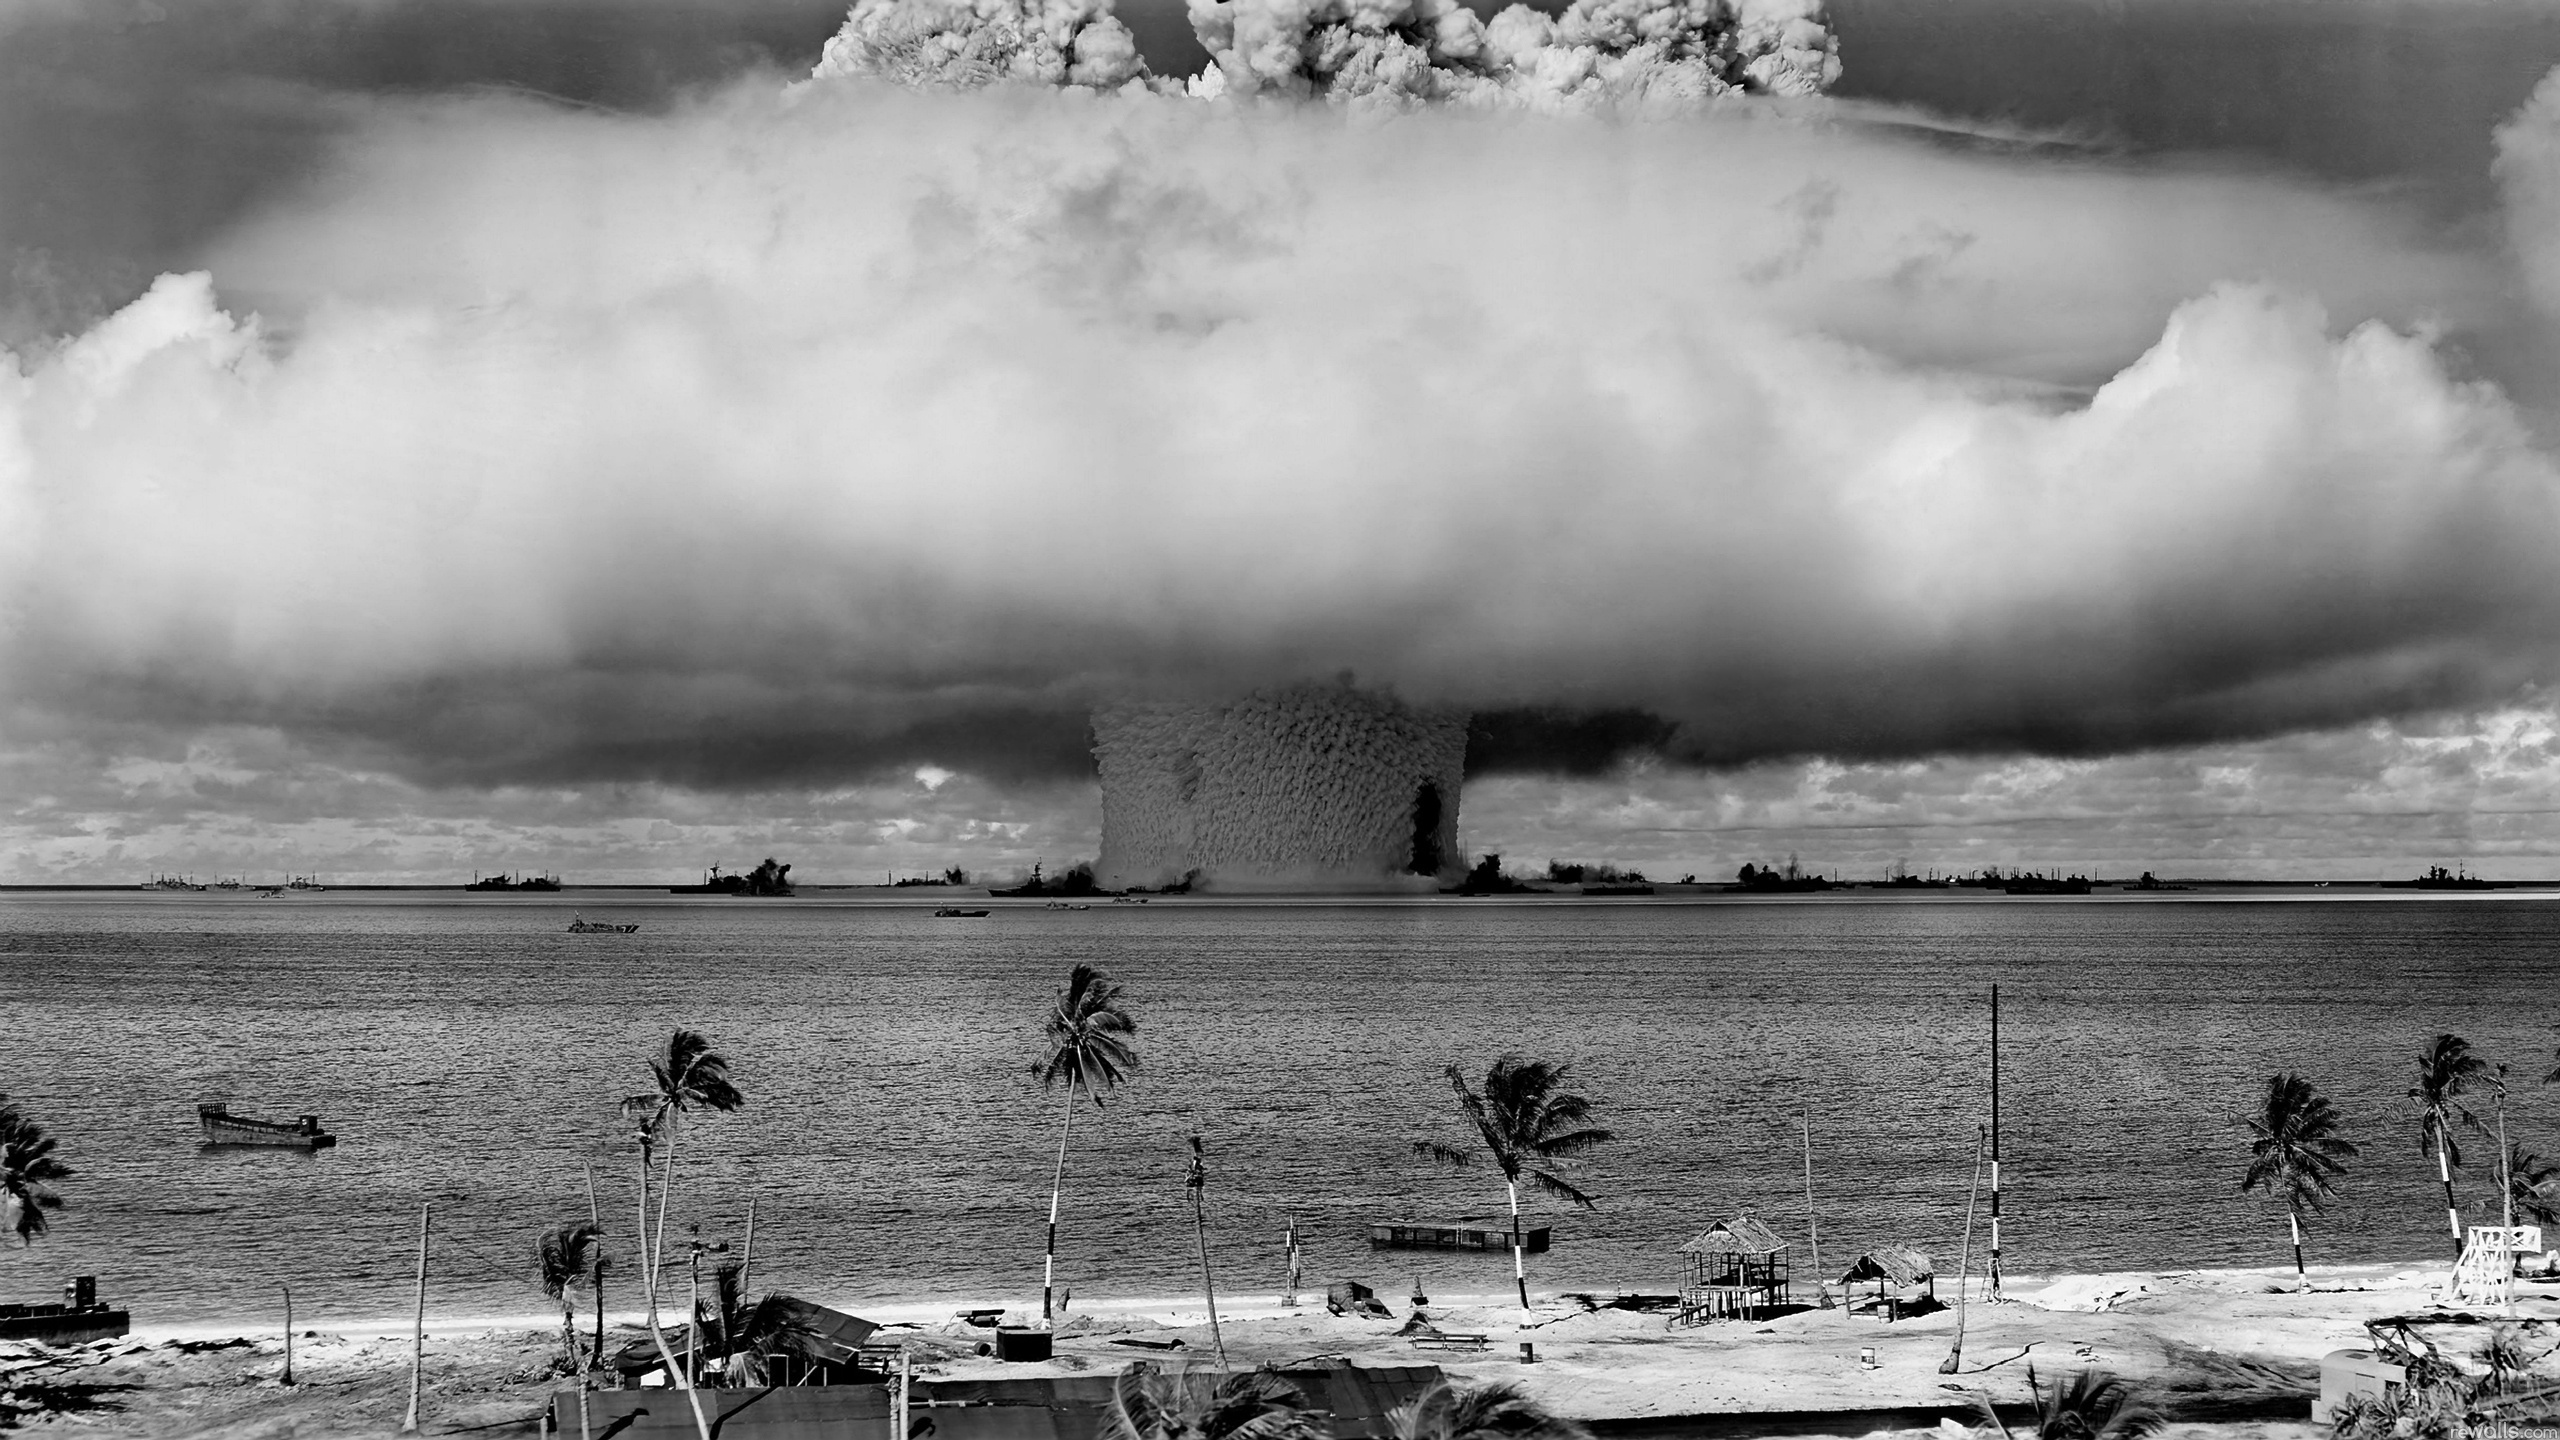 hd wallpapers atomic explosion - photo #45